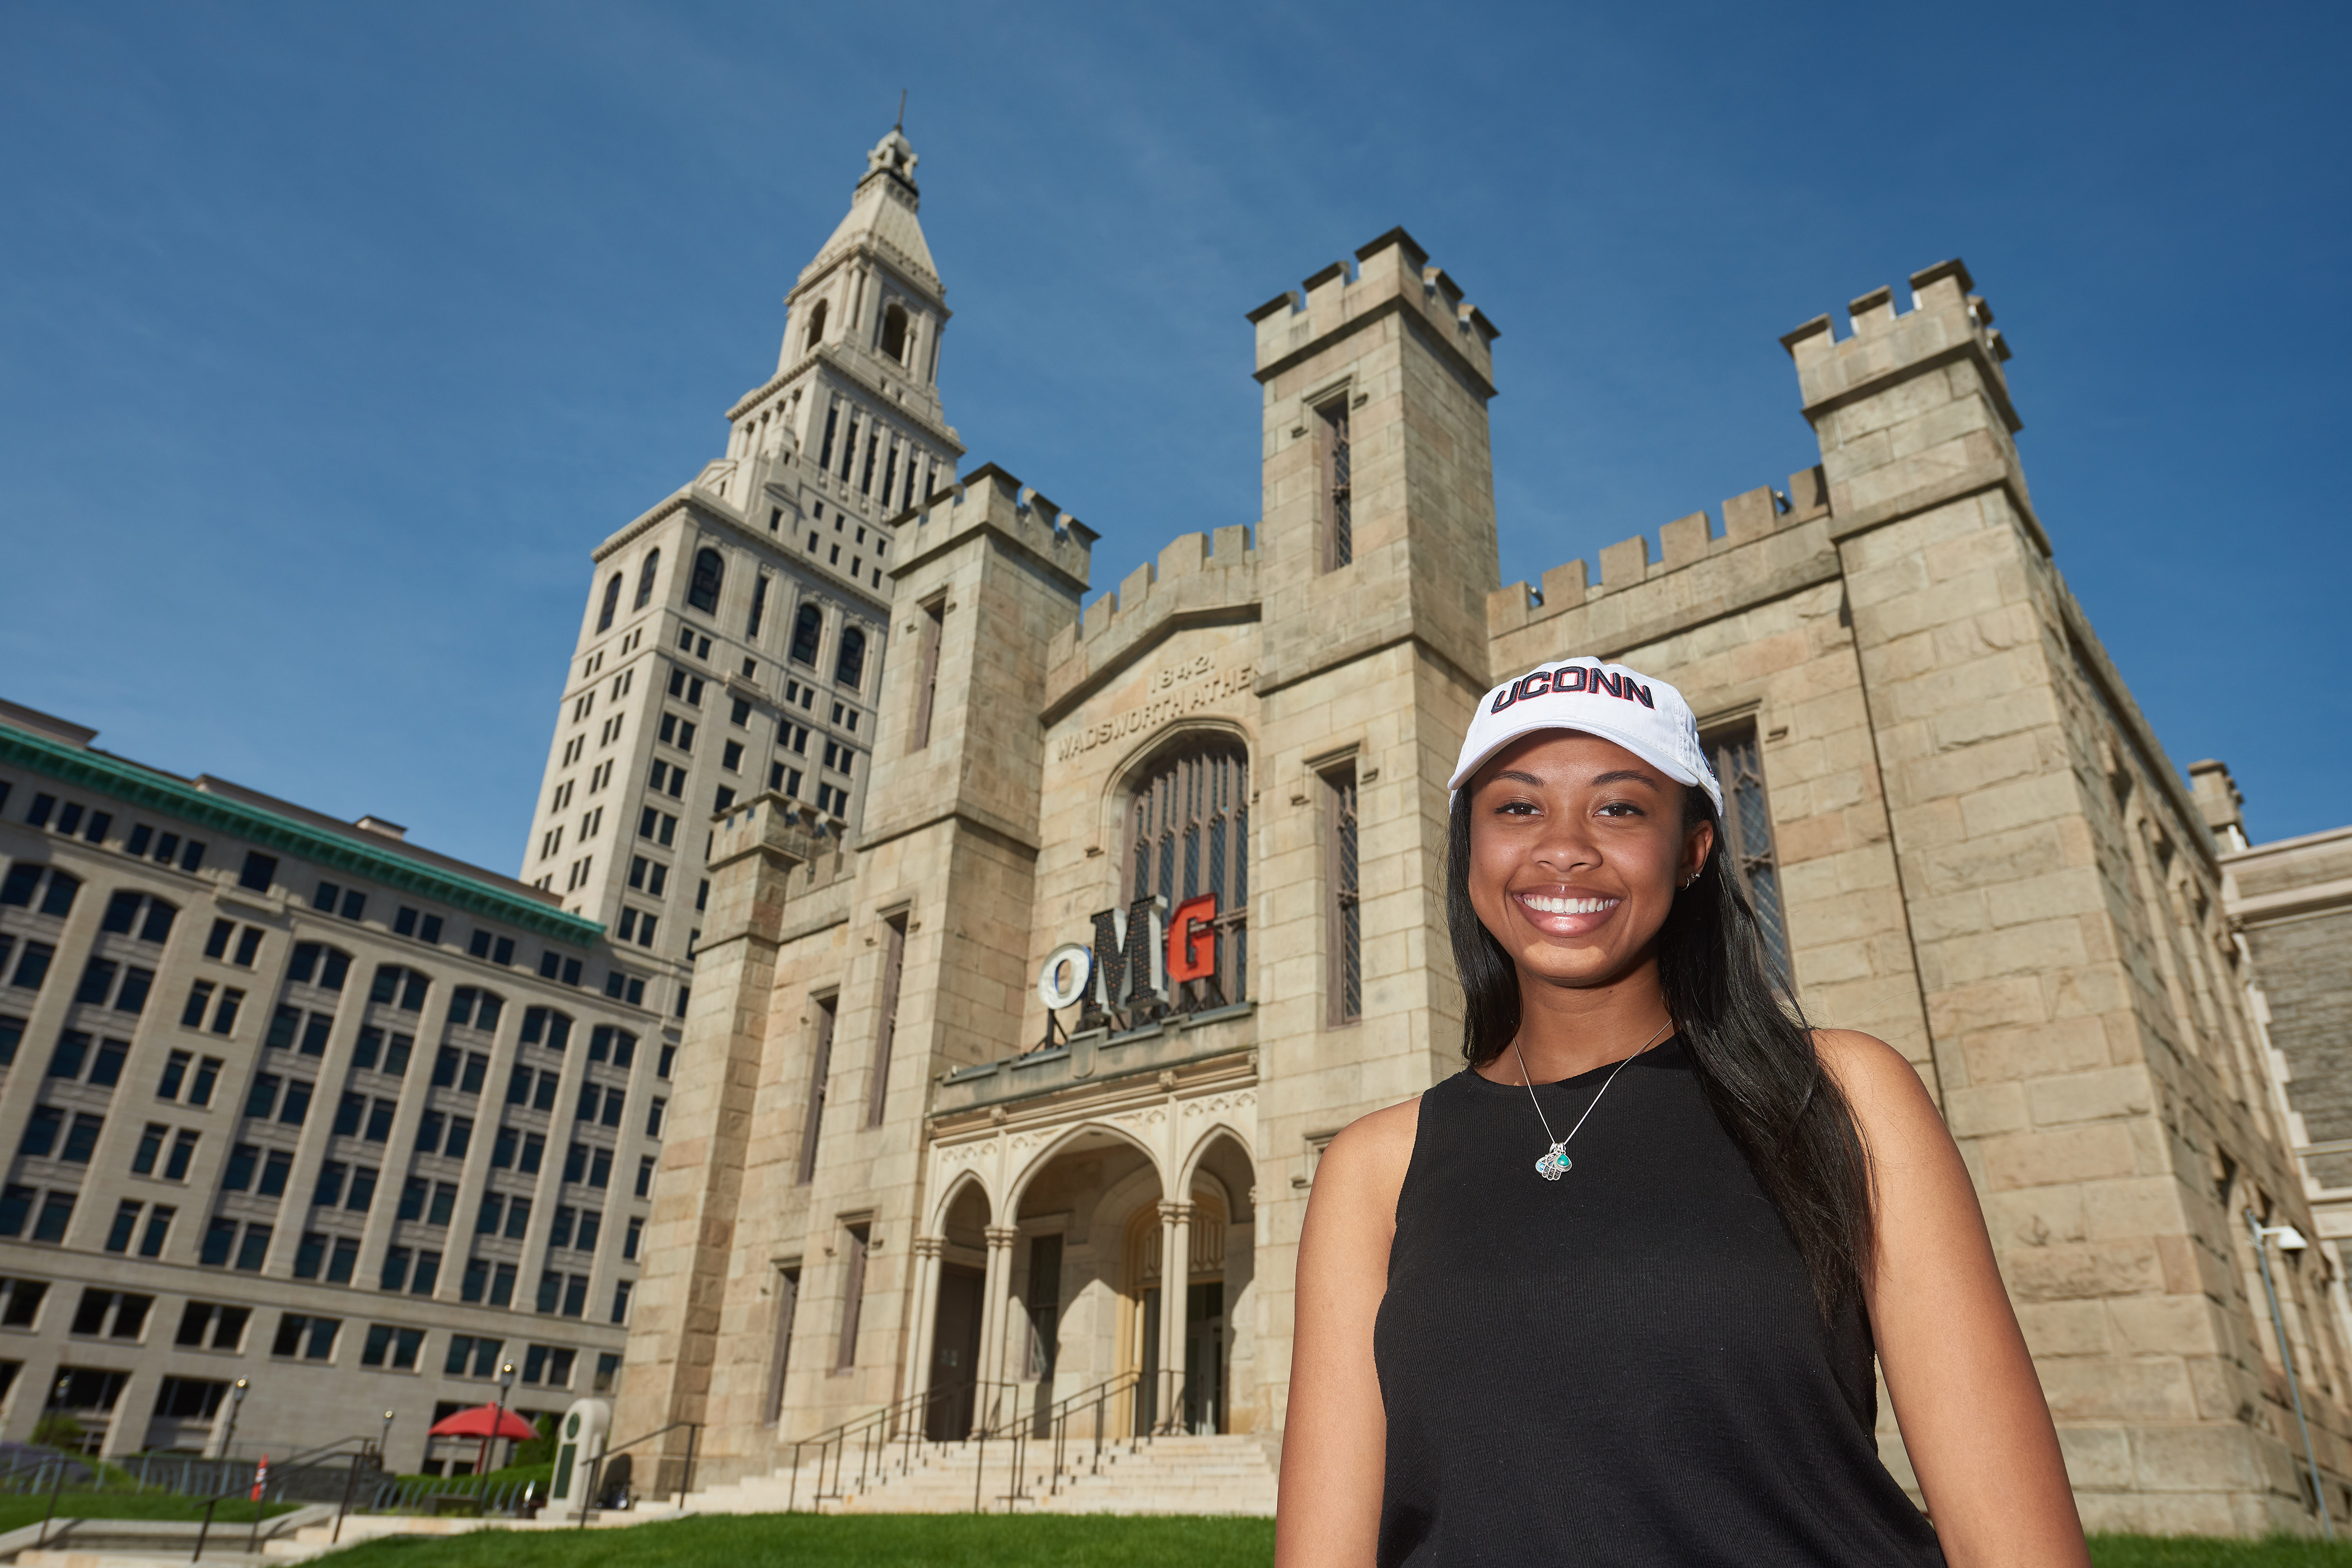 A student stands outside the Wadsworth Atheneum in Hartford. (Peter Morenus/UConn Photo)